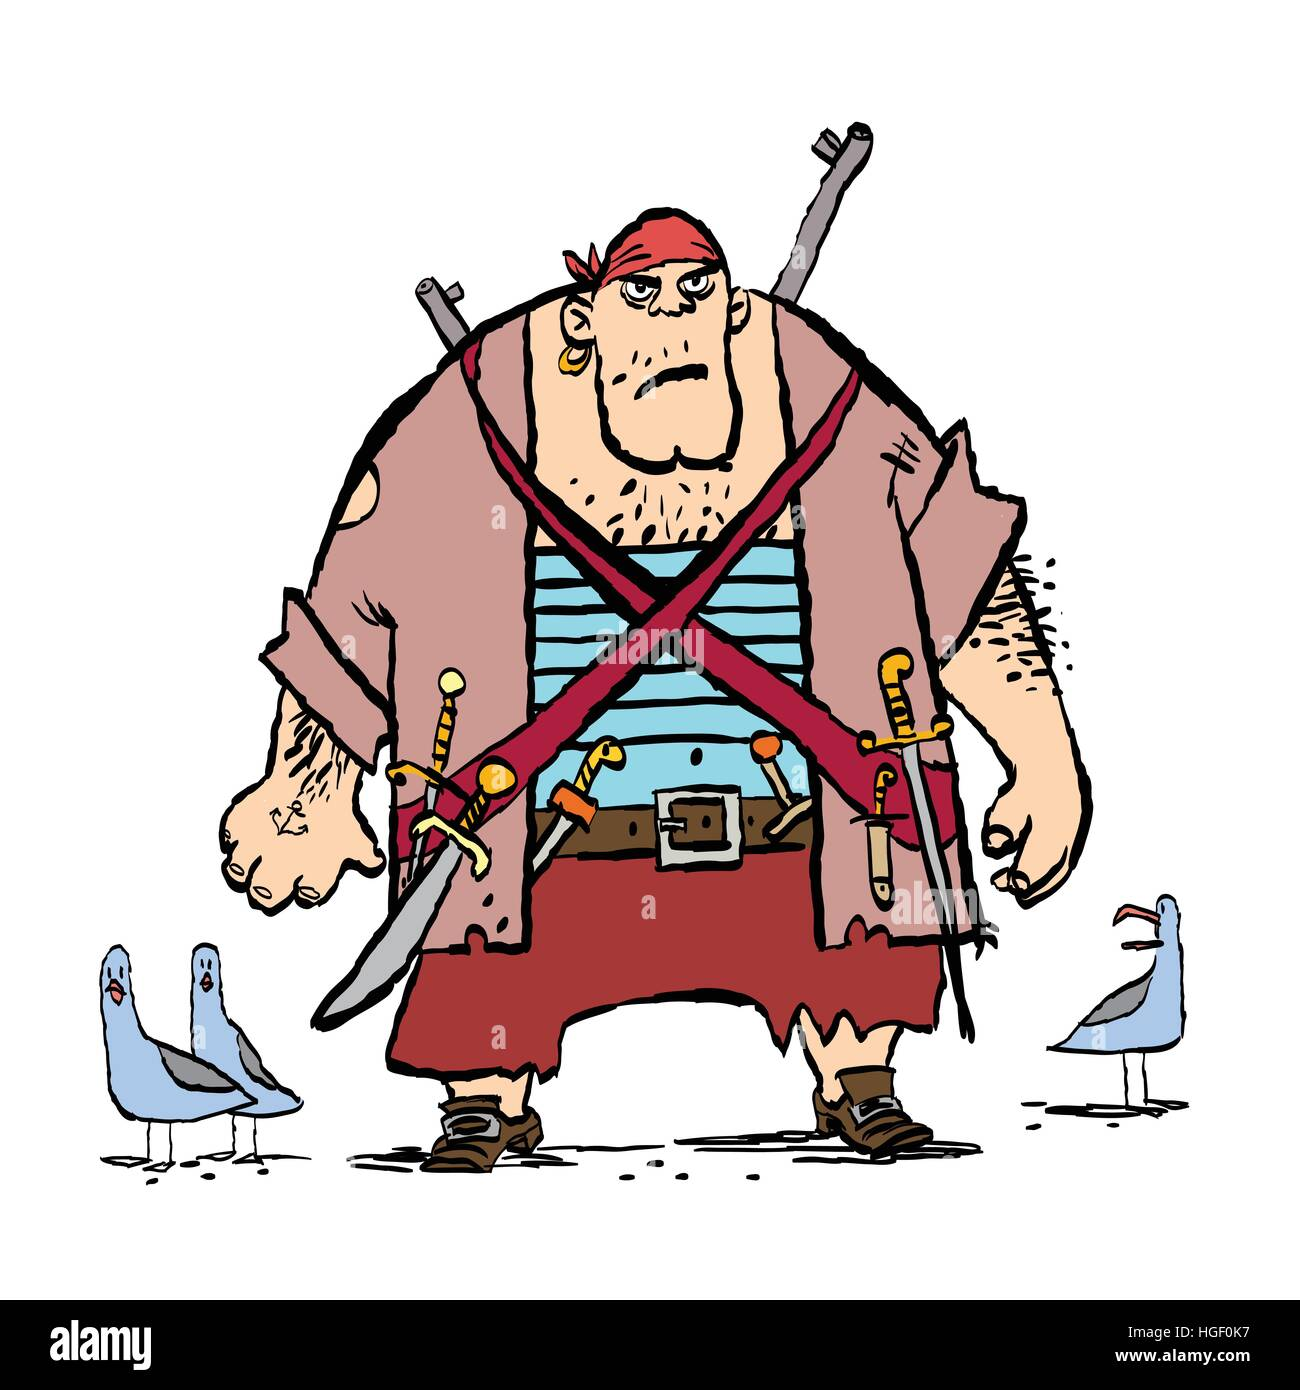 Huge funny pirate and seagulls - Stock Image